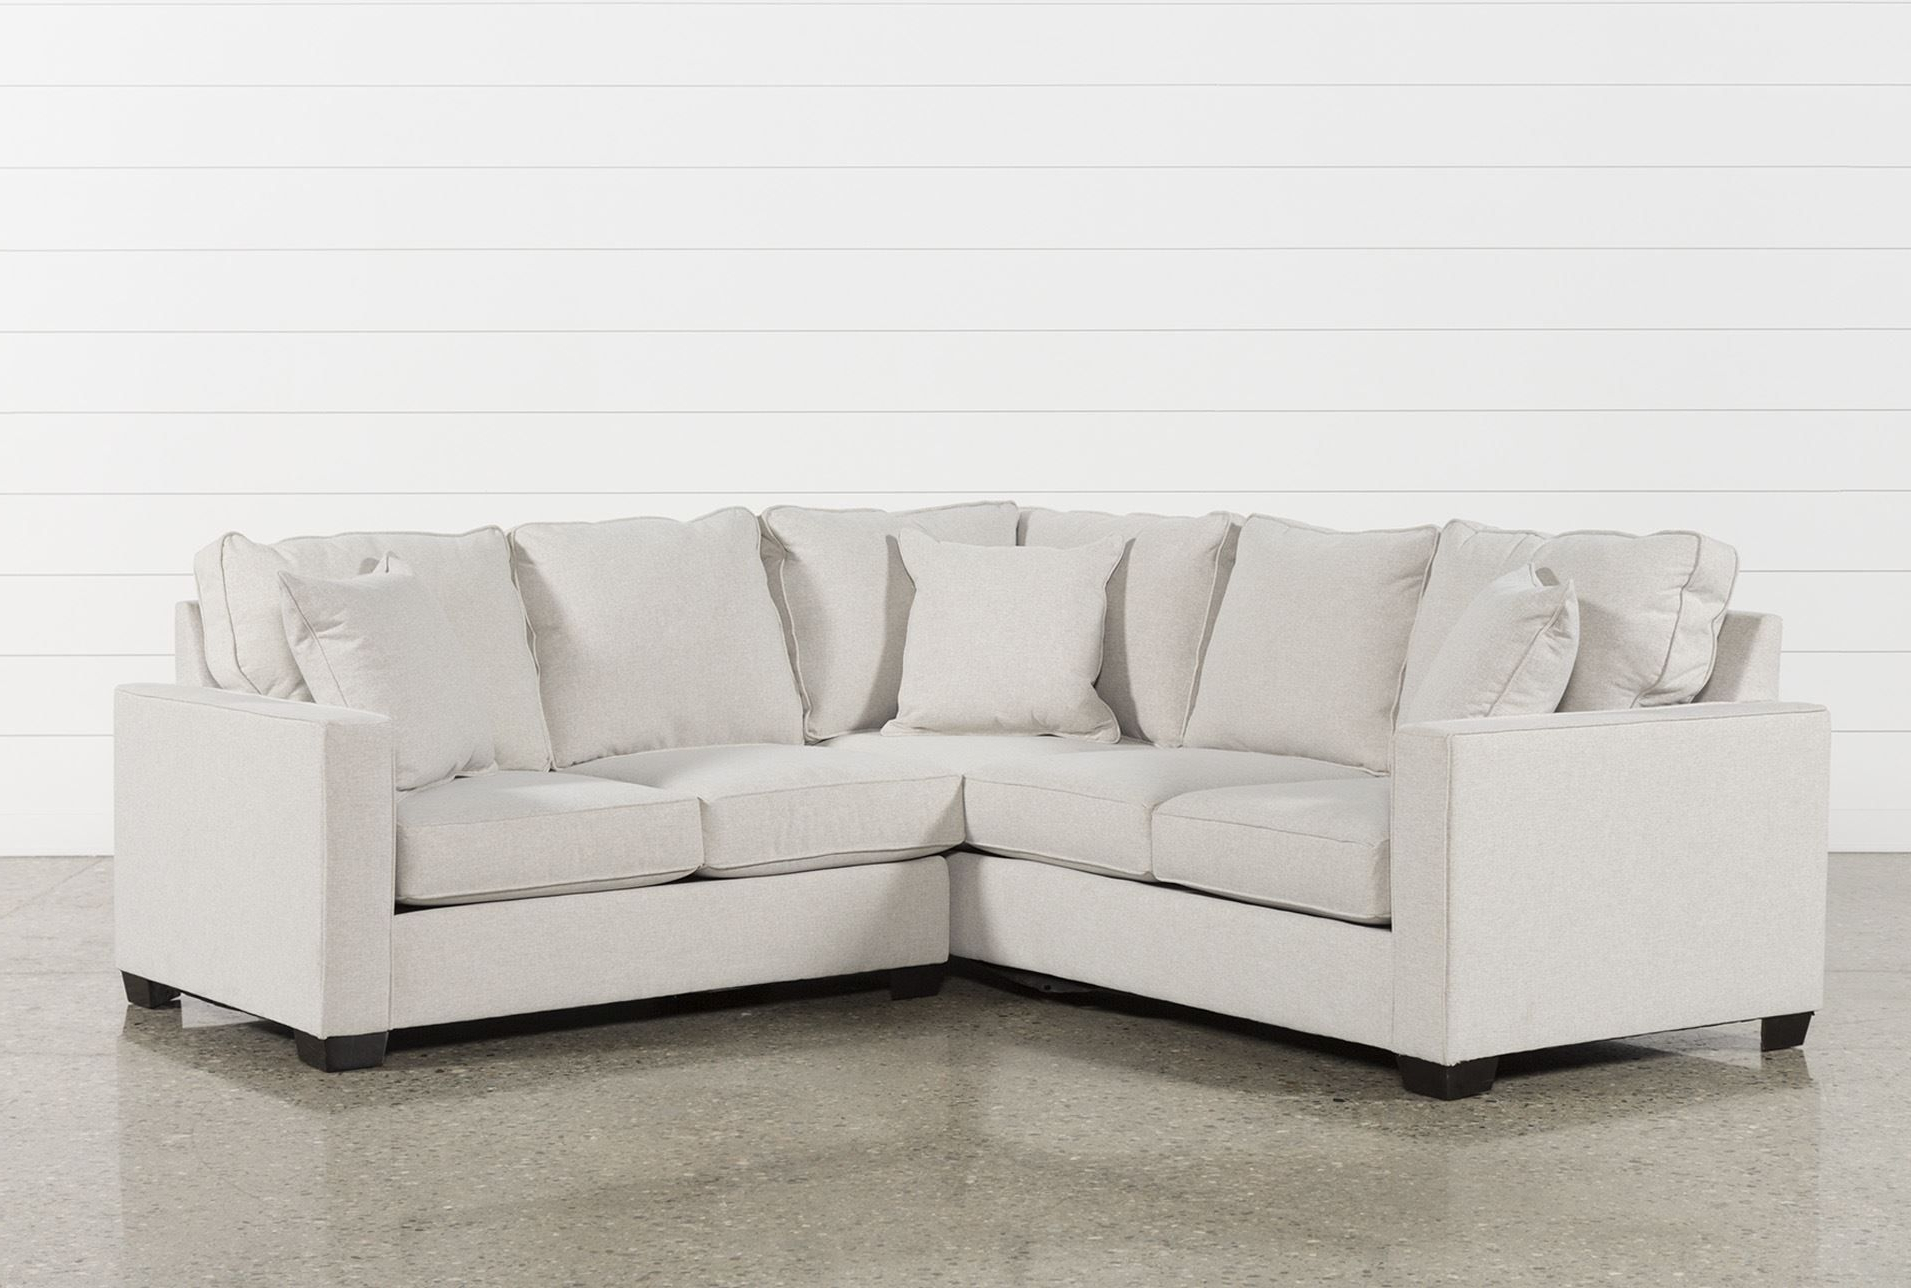 Raphael Ii Flax 2 Piece Sectionalw/raf Loveseat, Beige, Sofas Inside Popular Marissa Ii 3 Piece Sectionals (Gallery 7 of 20)